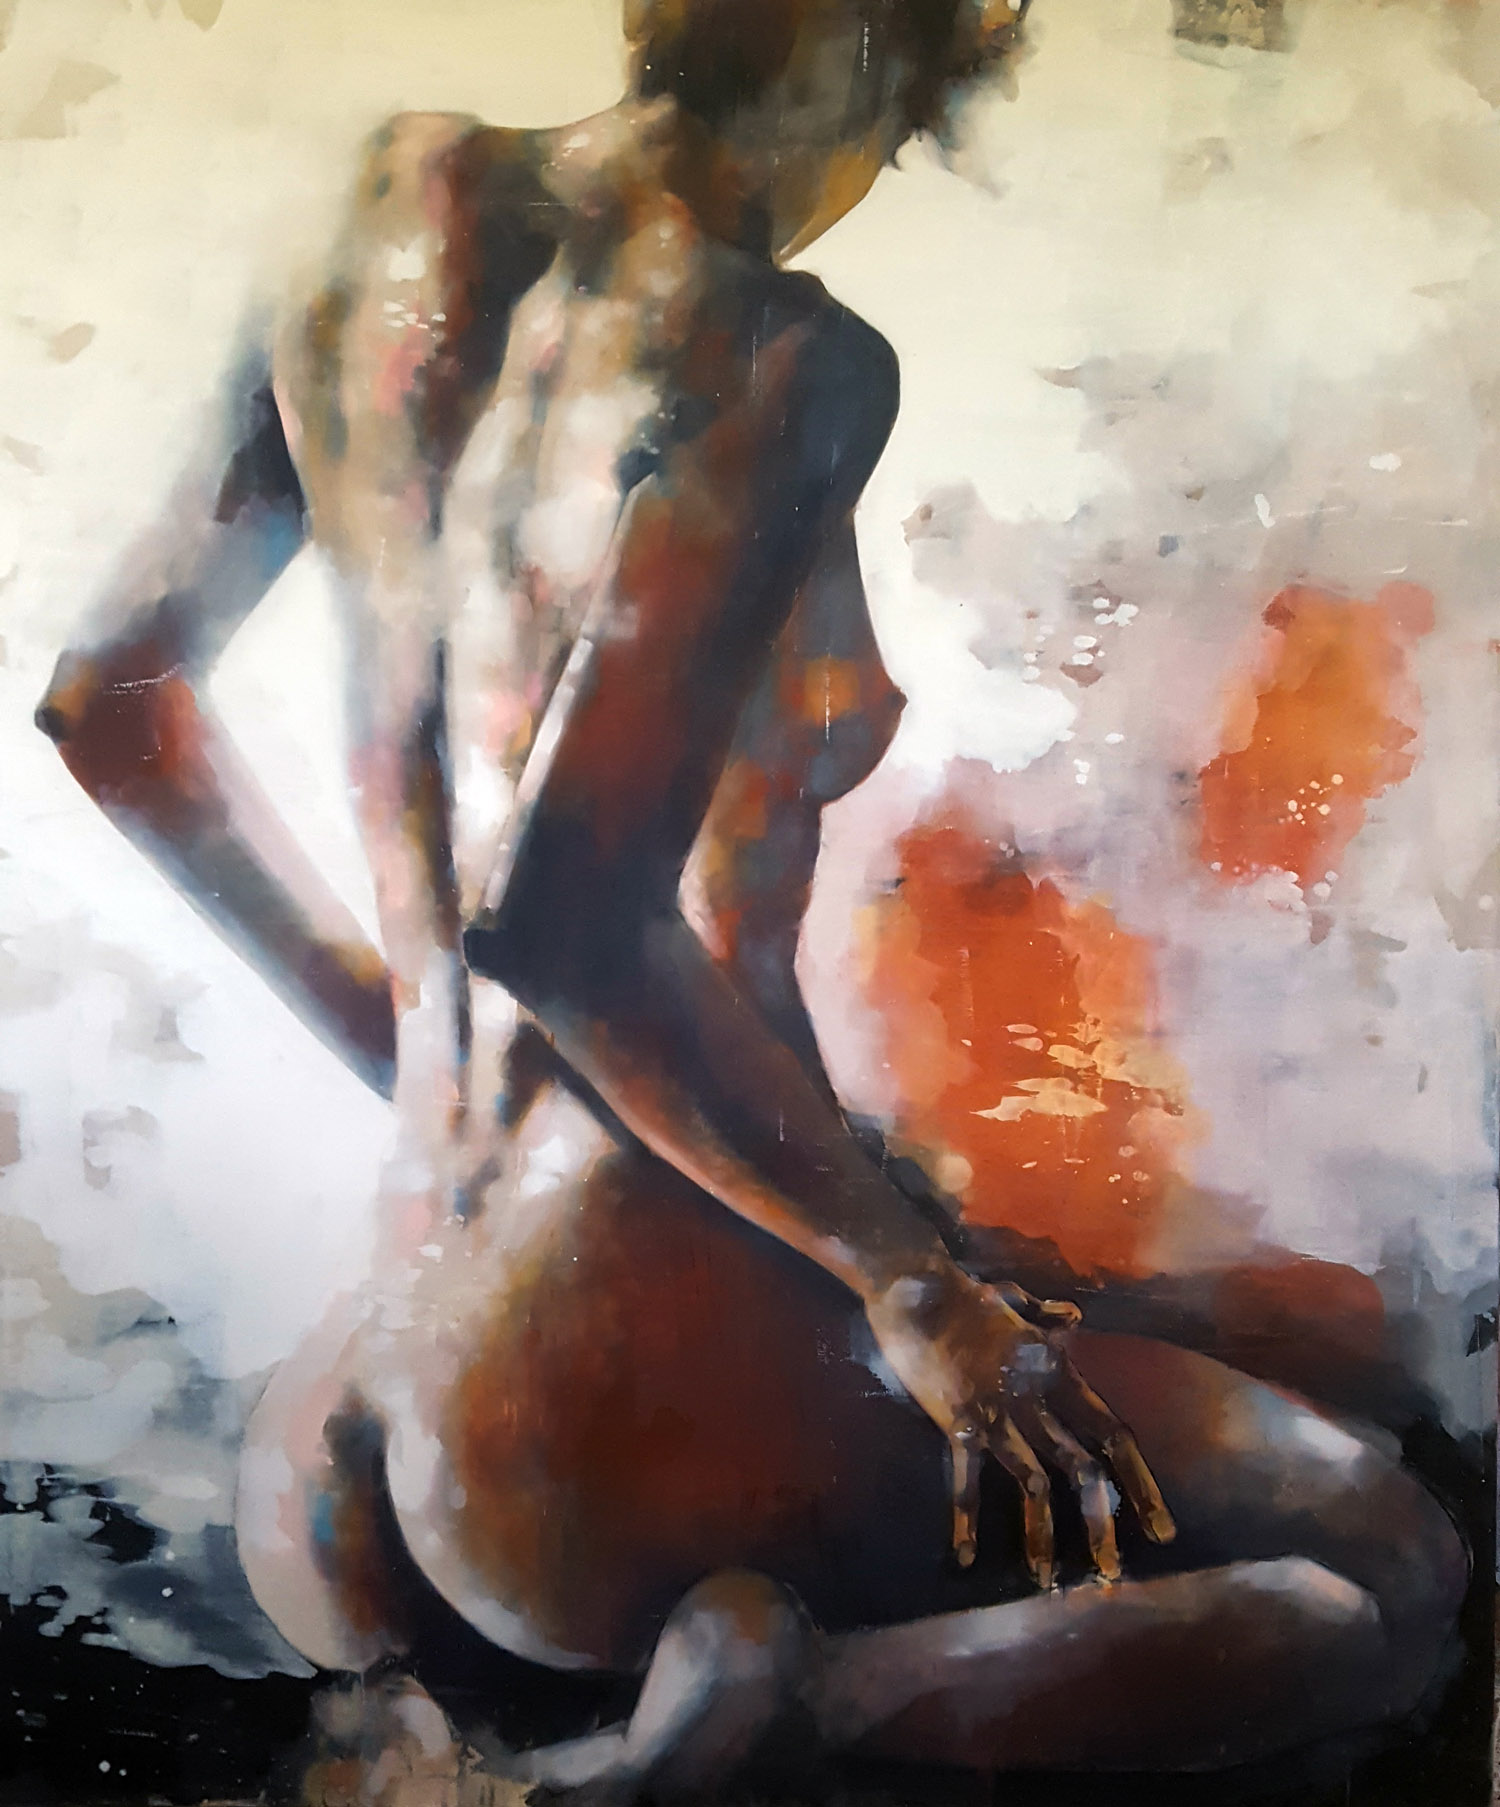 10-29-18 back study, oil on canvas, 180x150cm